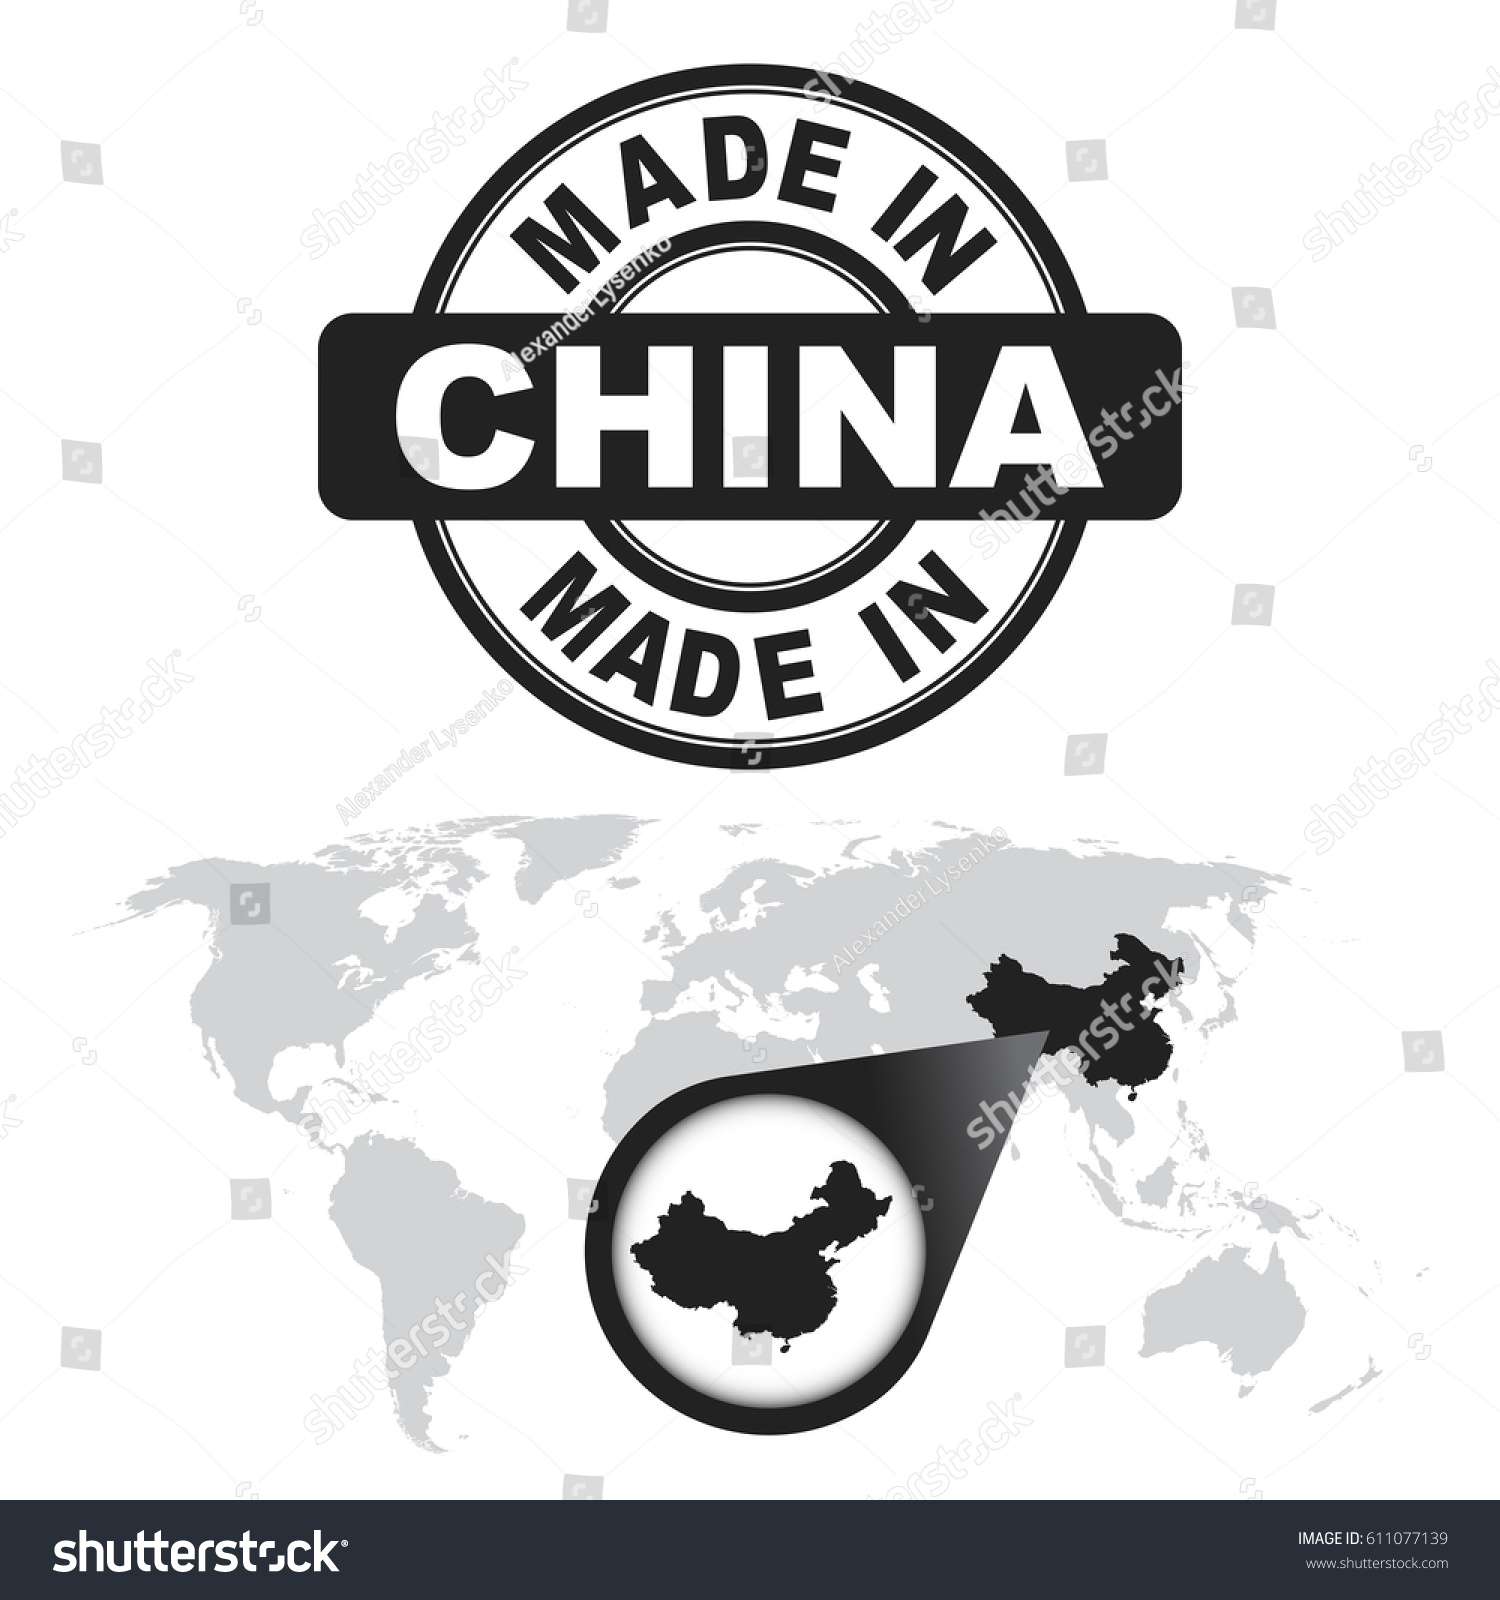 Made china stamp world map zoom stock vector 611077139 shutterstock made in china stamp world map with zoom on country vector emblem in flat gumiabroncs Choice Image